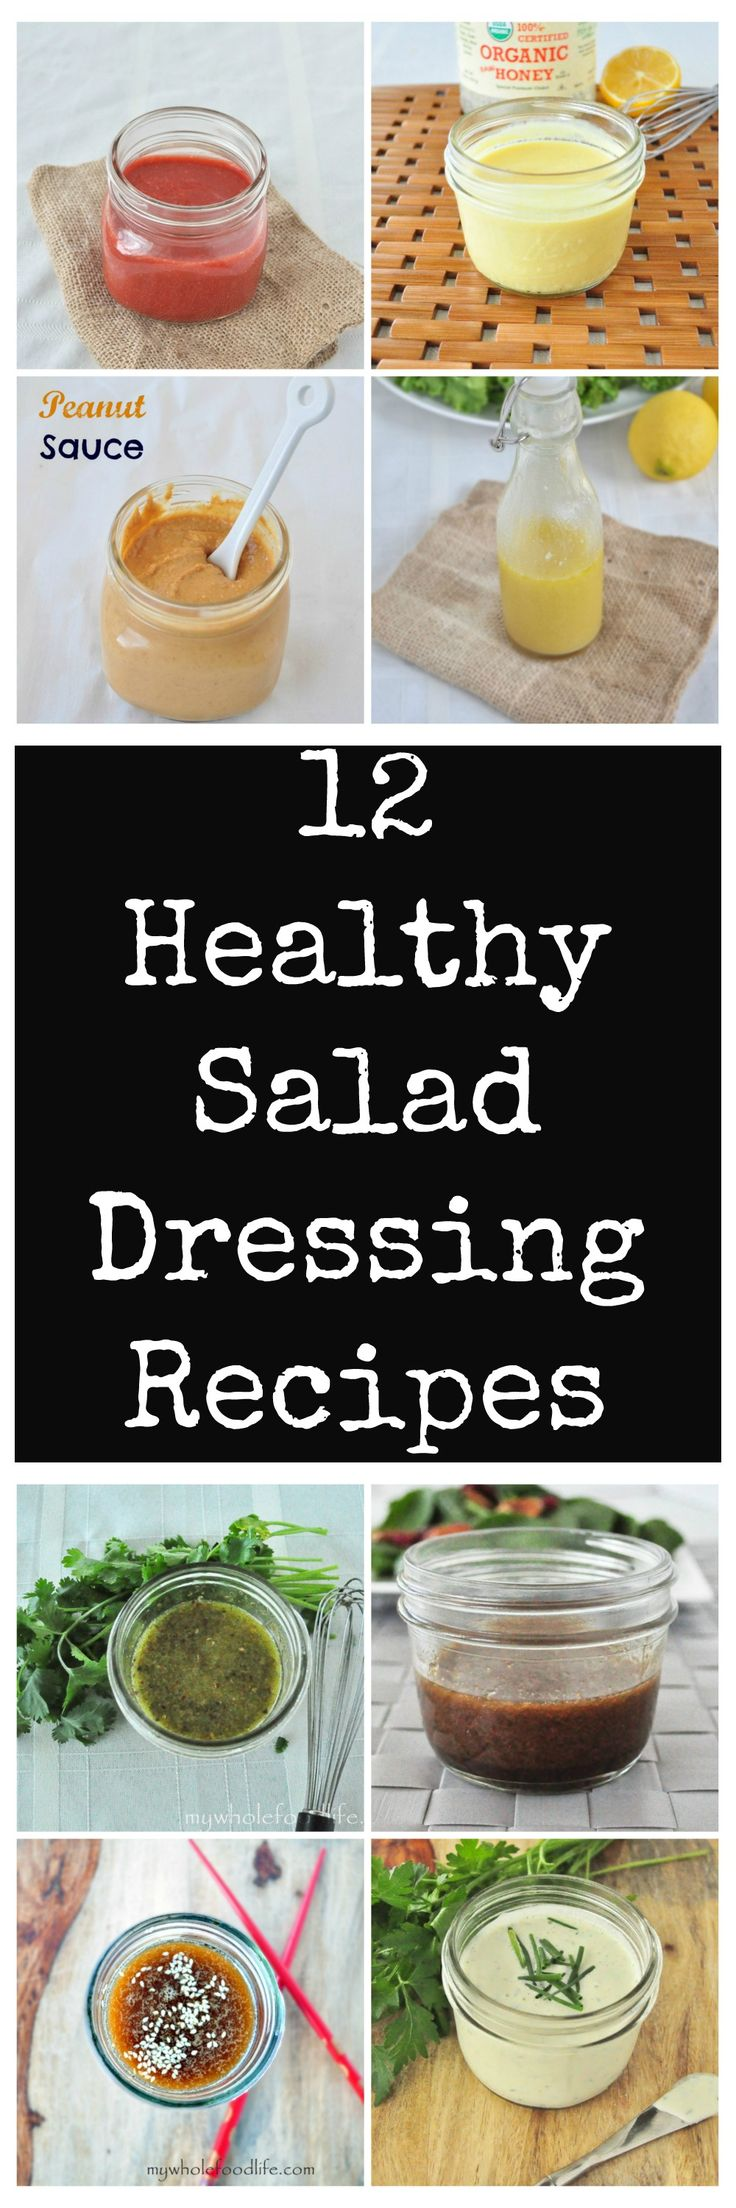 12 Healthy Salad Dressing Recipes to jump start you to clean eating in 2015. Free of refined sugars. Make them in minutes. Vegan and gluten free.>>>>> ! A Permanent Health Kick ! - Healthy Food Recipes and Fitness Community